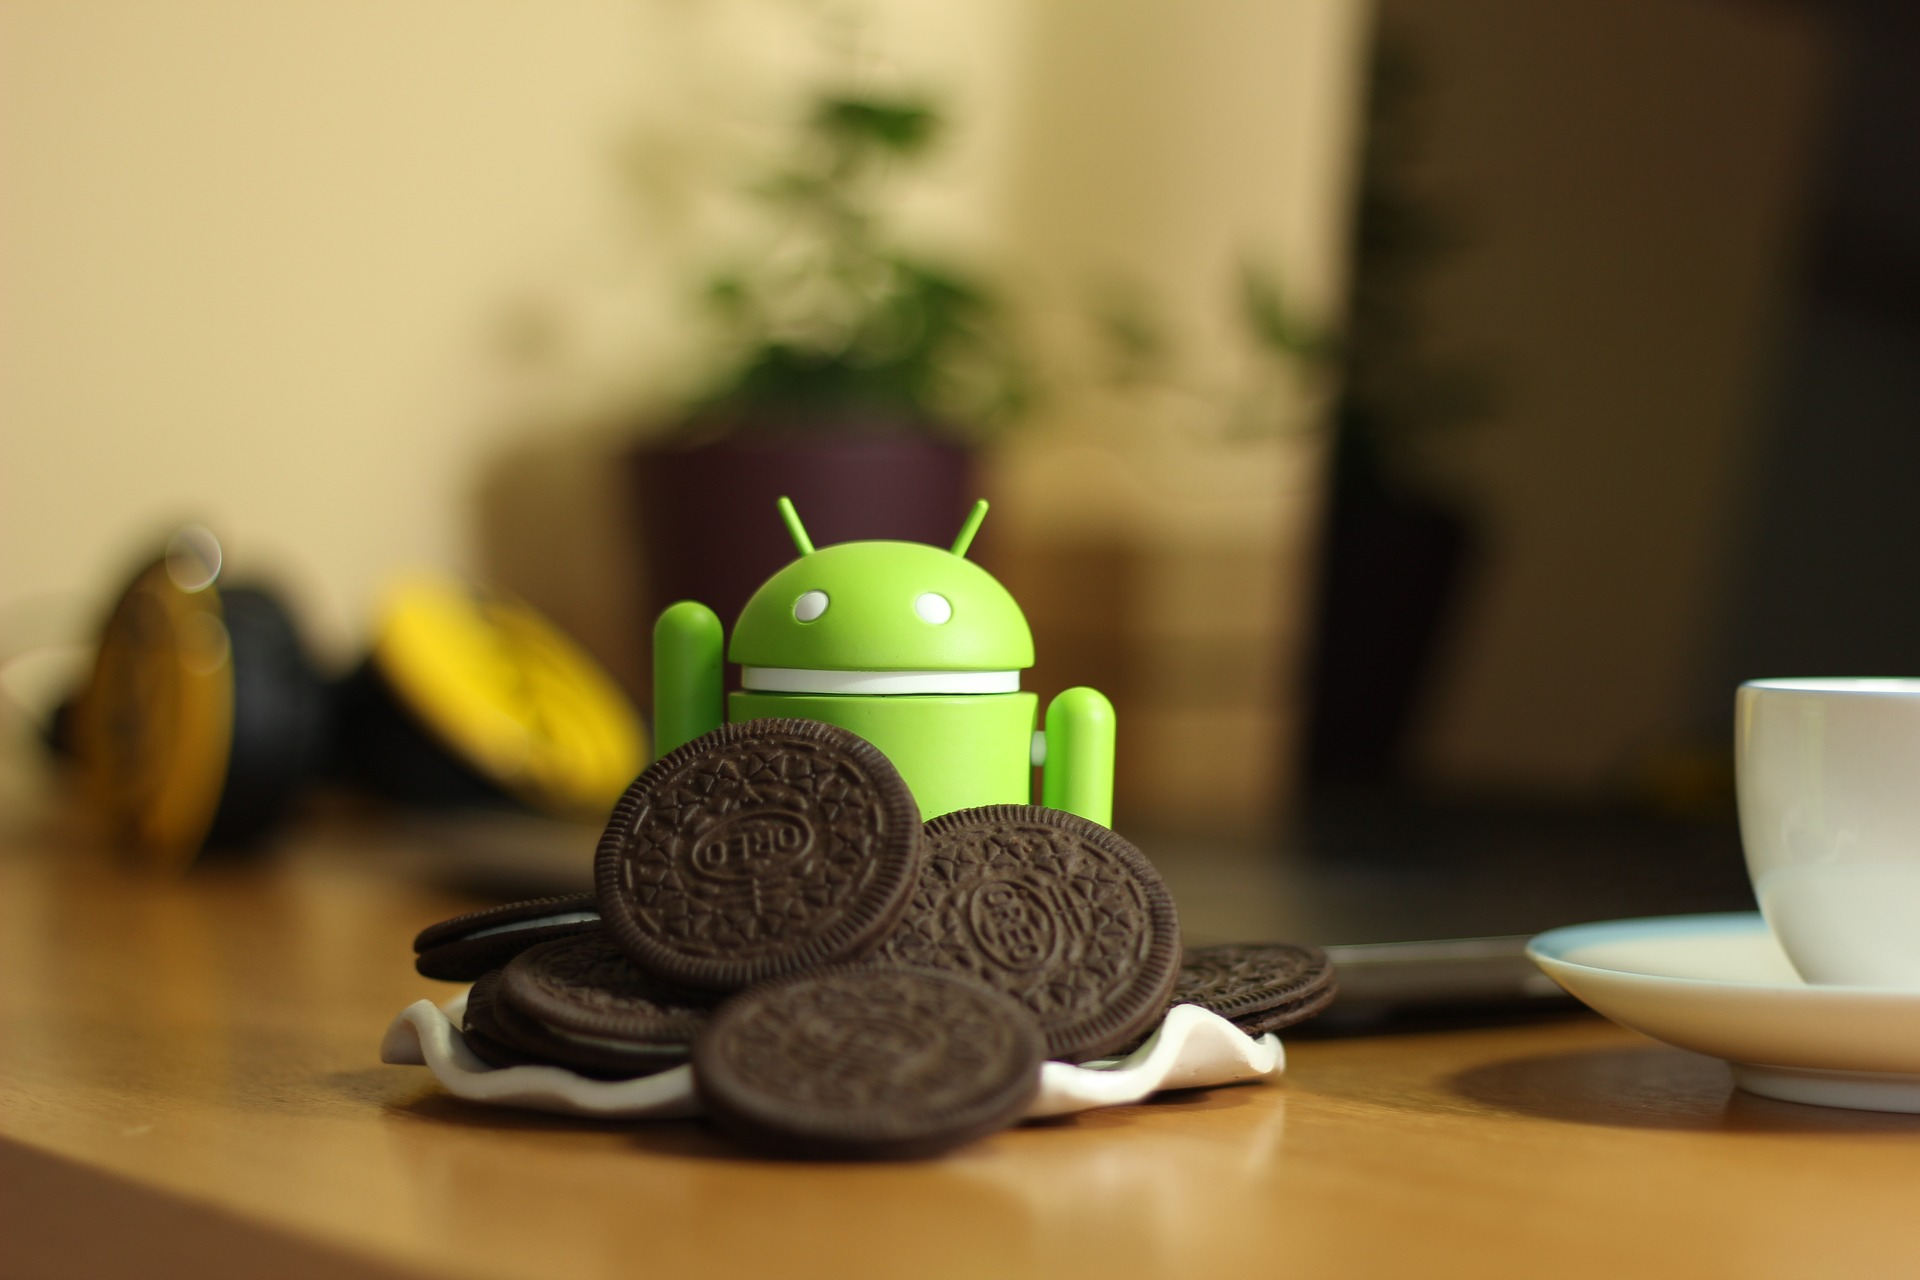 Android droid and Oreos